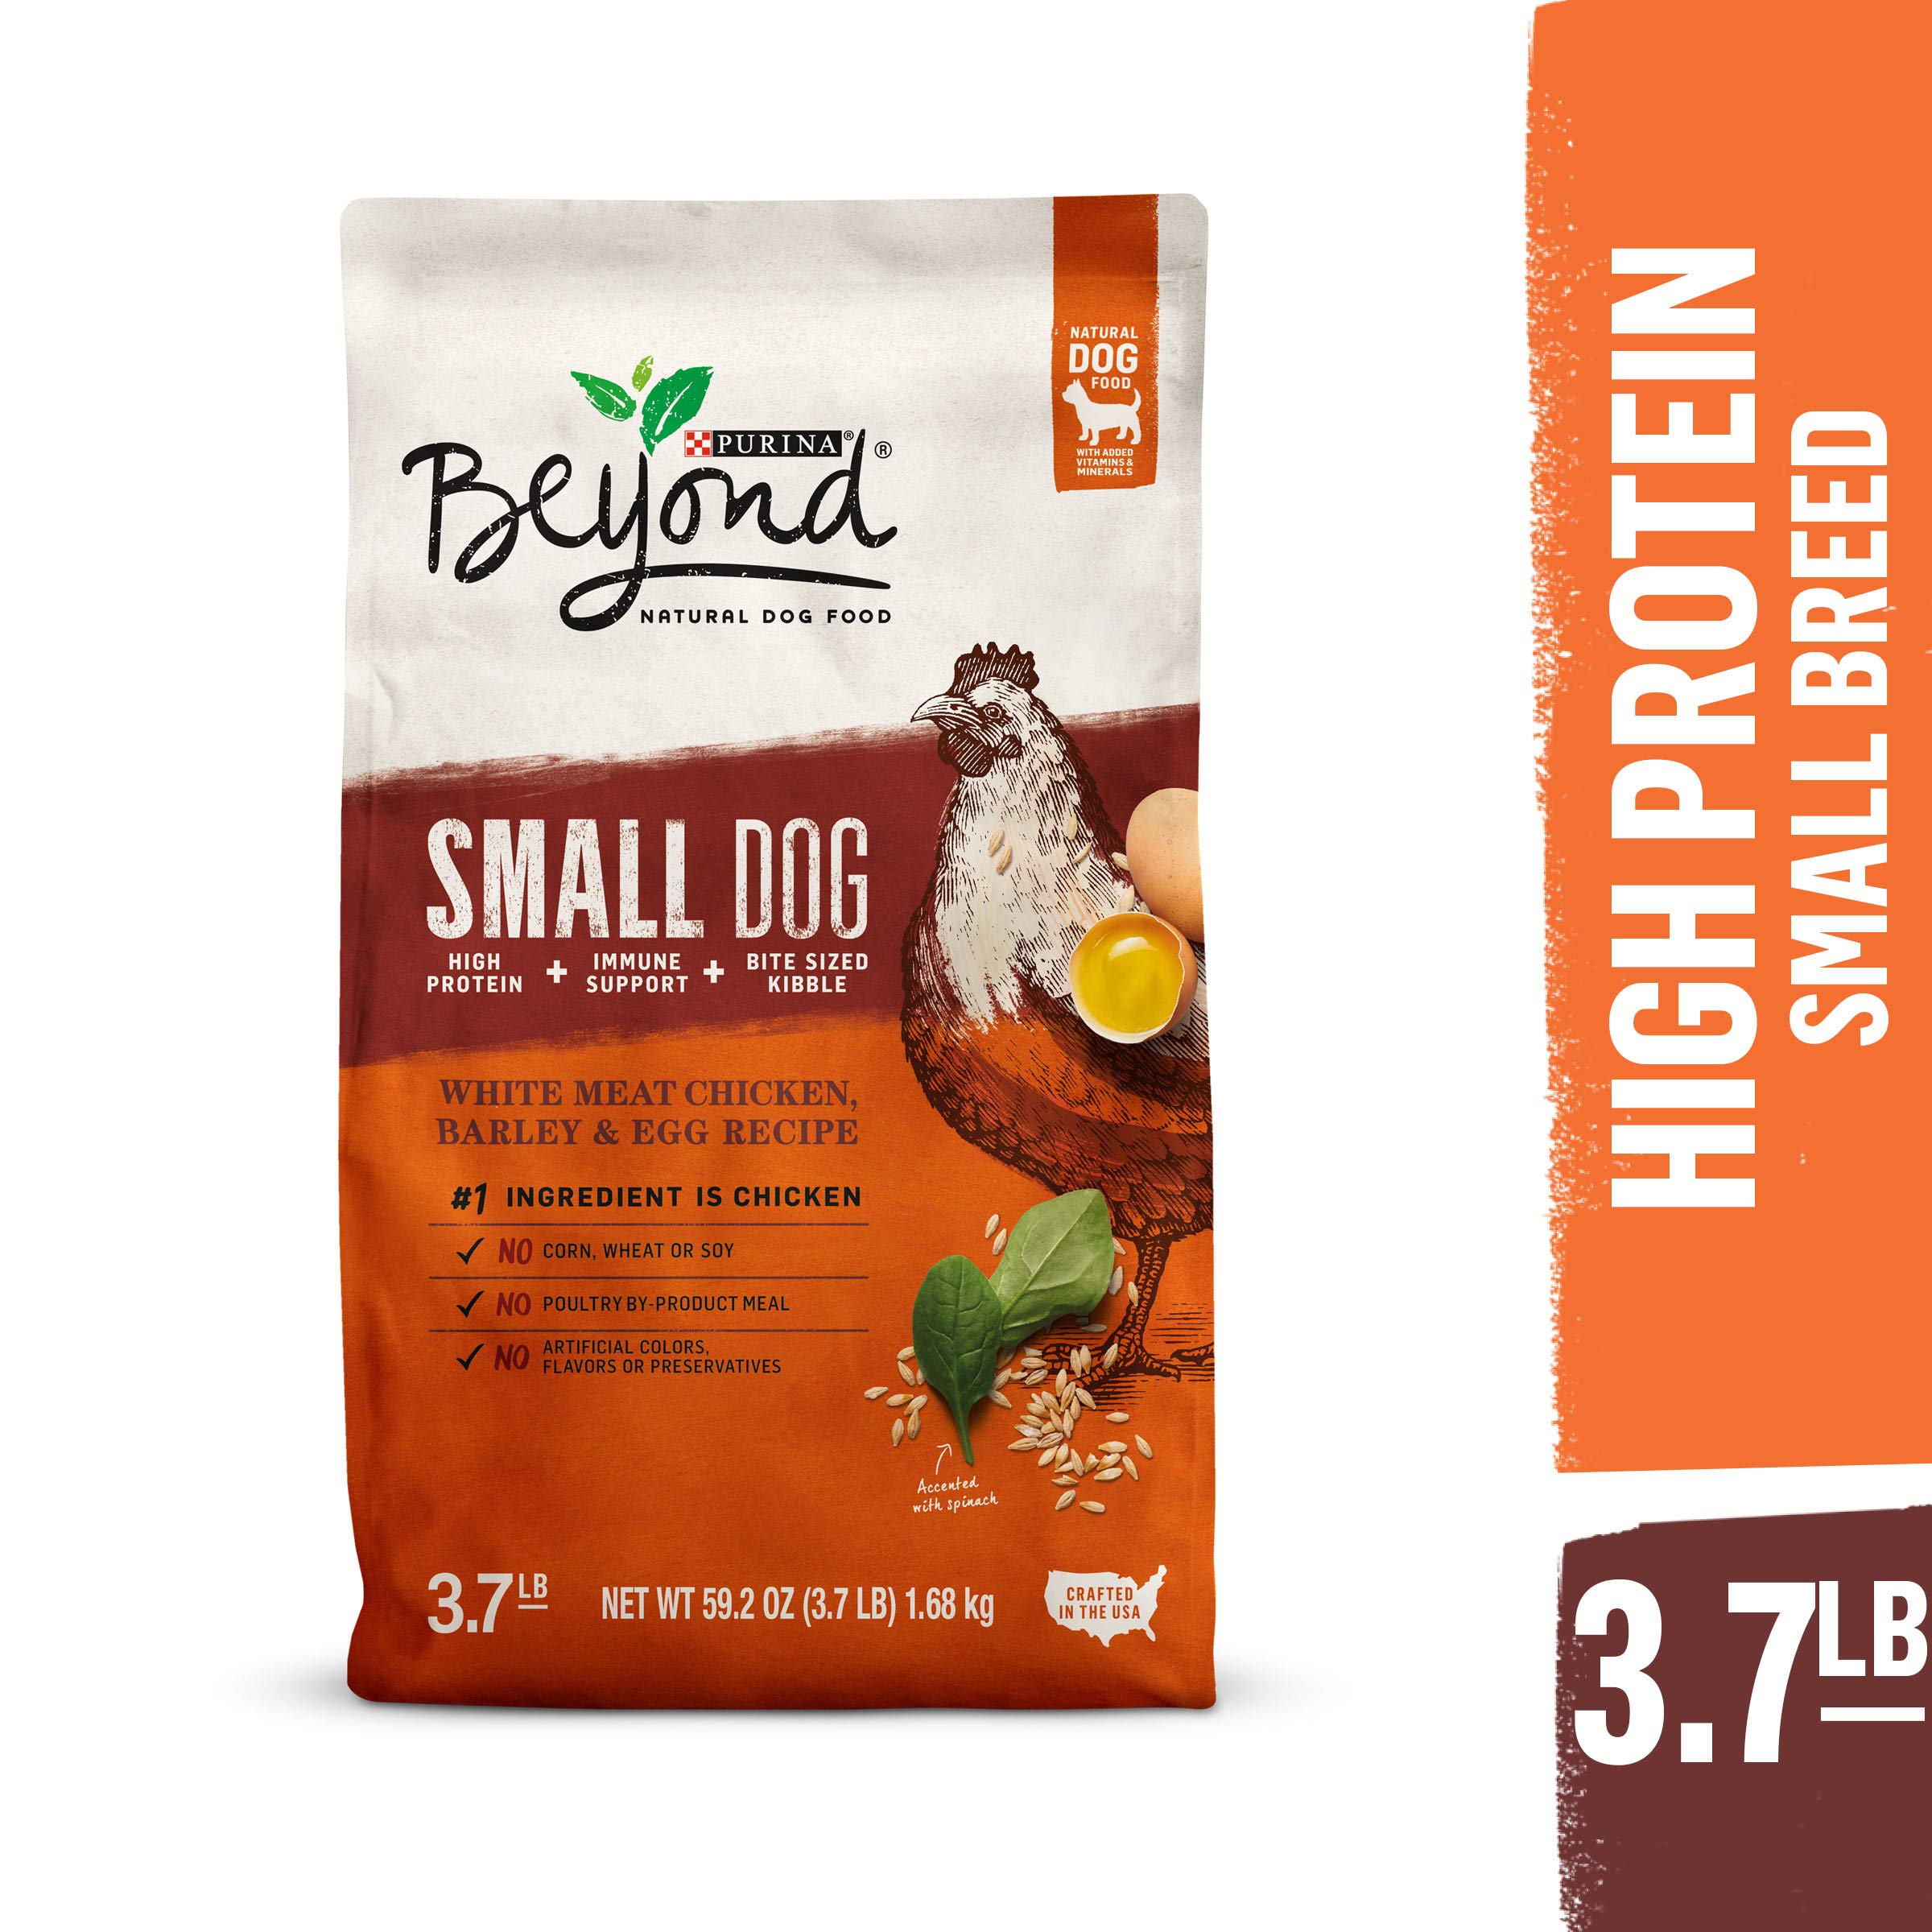 Purina Beyond Natural, High Protein Small Breed Dry Dog Food, Chicken, Barley & Egg Recipe - 3.7 lb. Bag